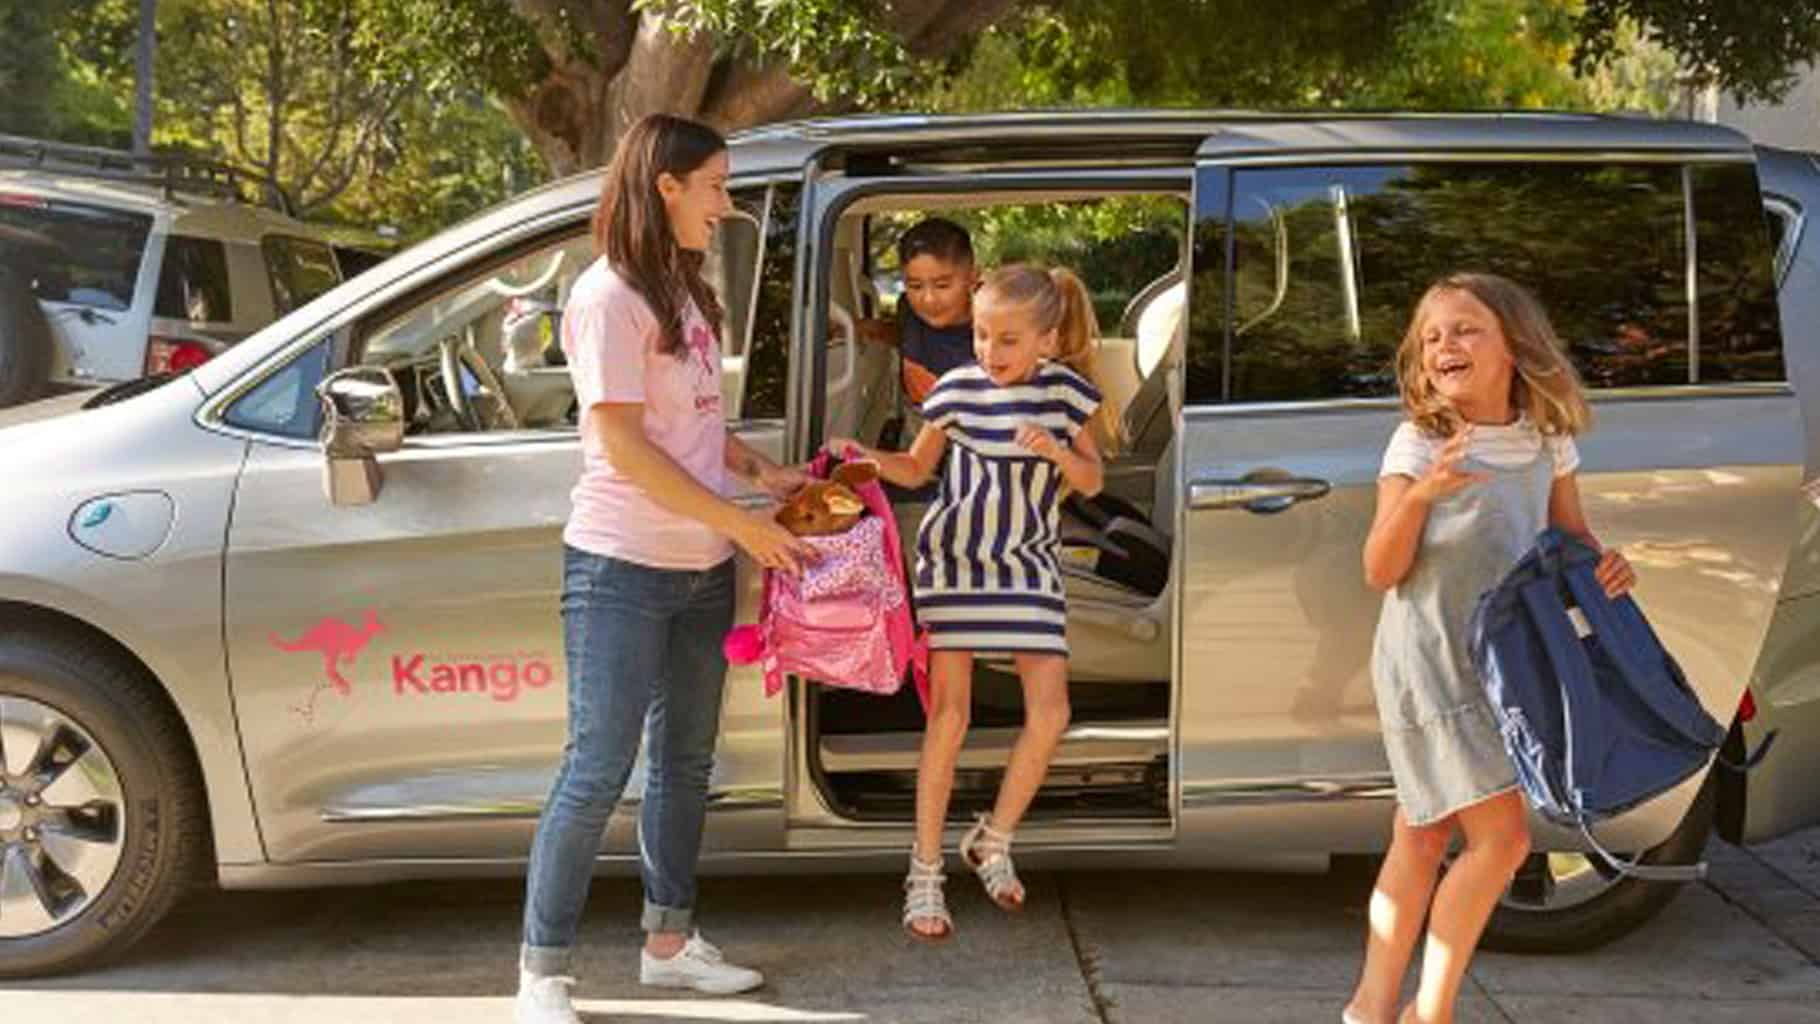 Kango, a ride-sharing service for school-age kids, raises $3 6M in